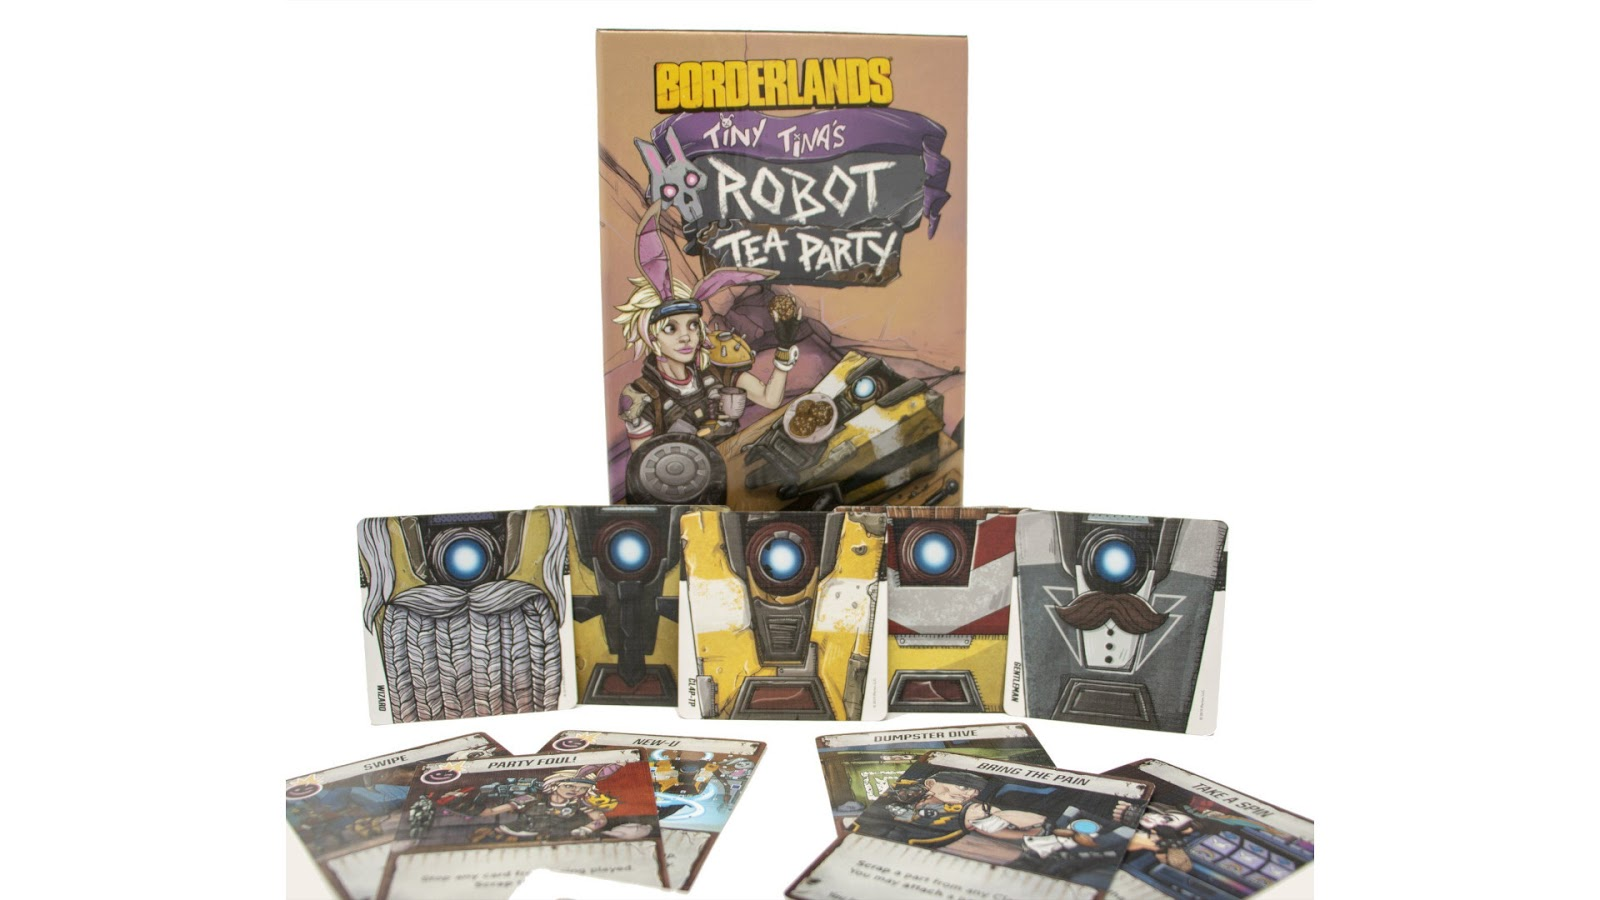 Borderlands Board game Tiny Tinas Robot Tea Party news